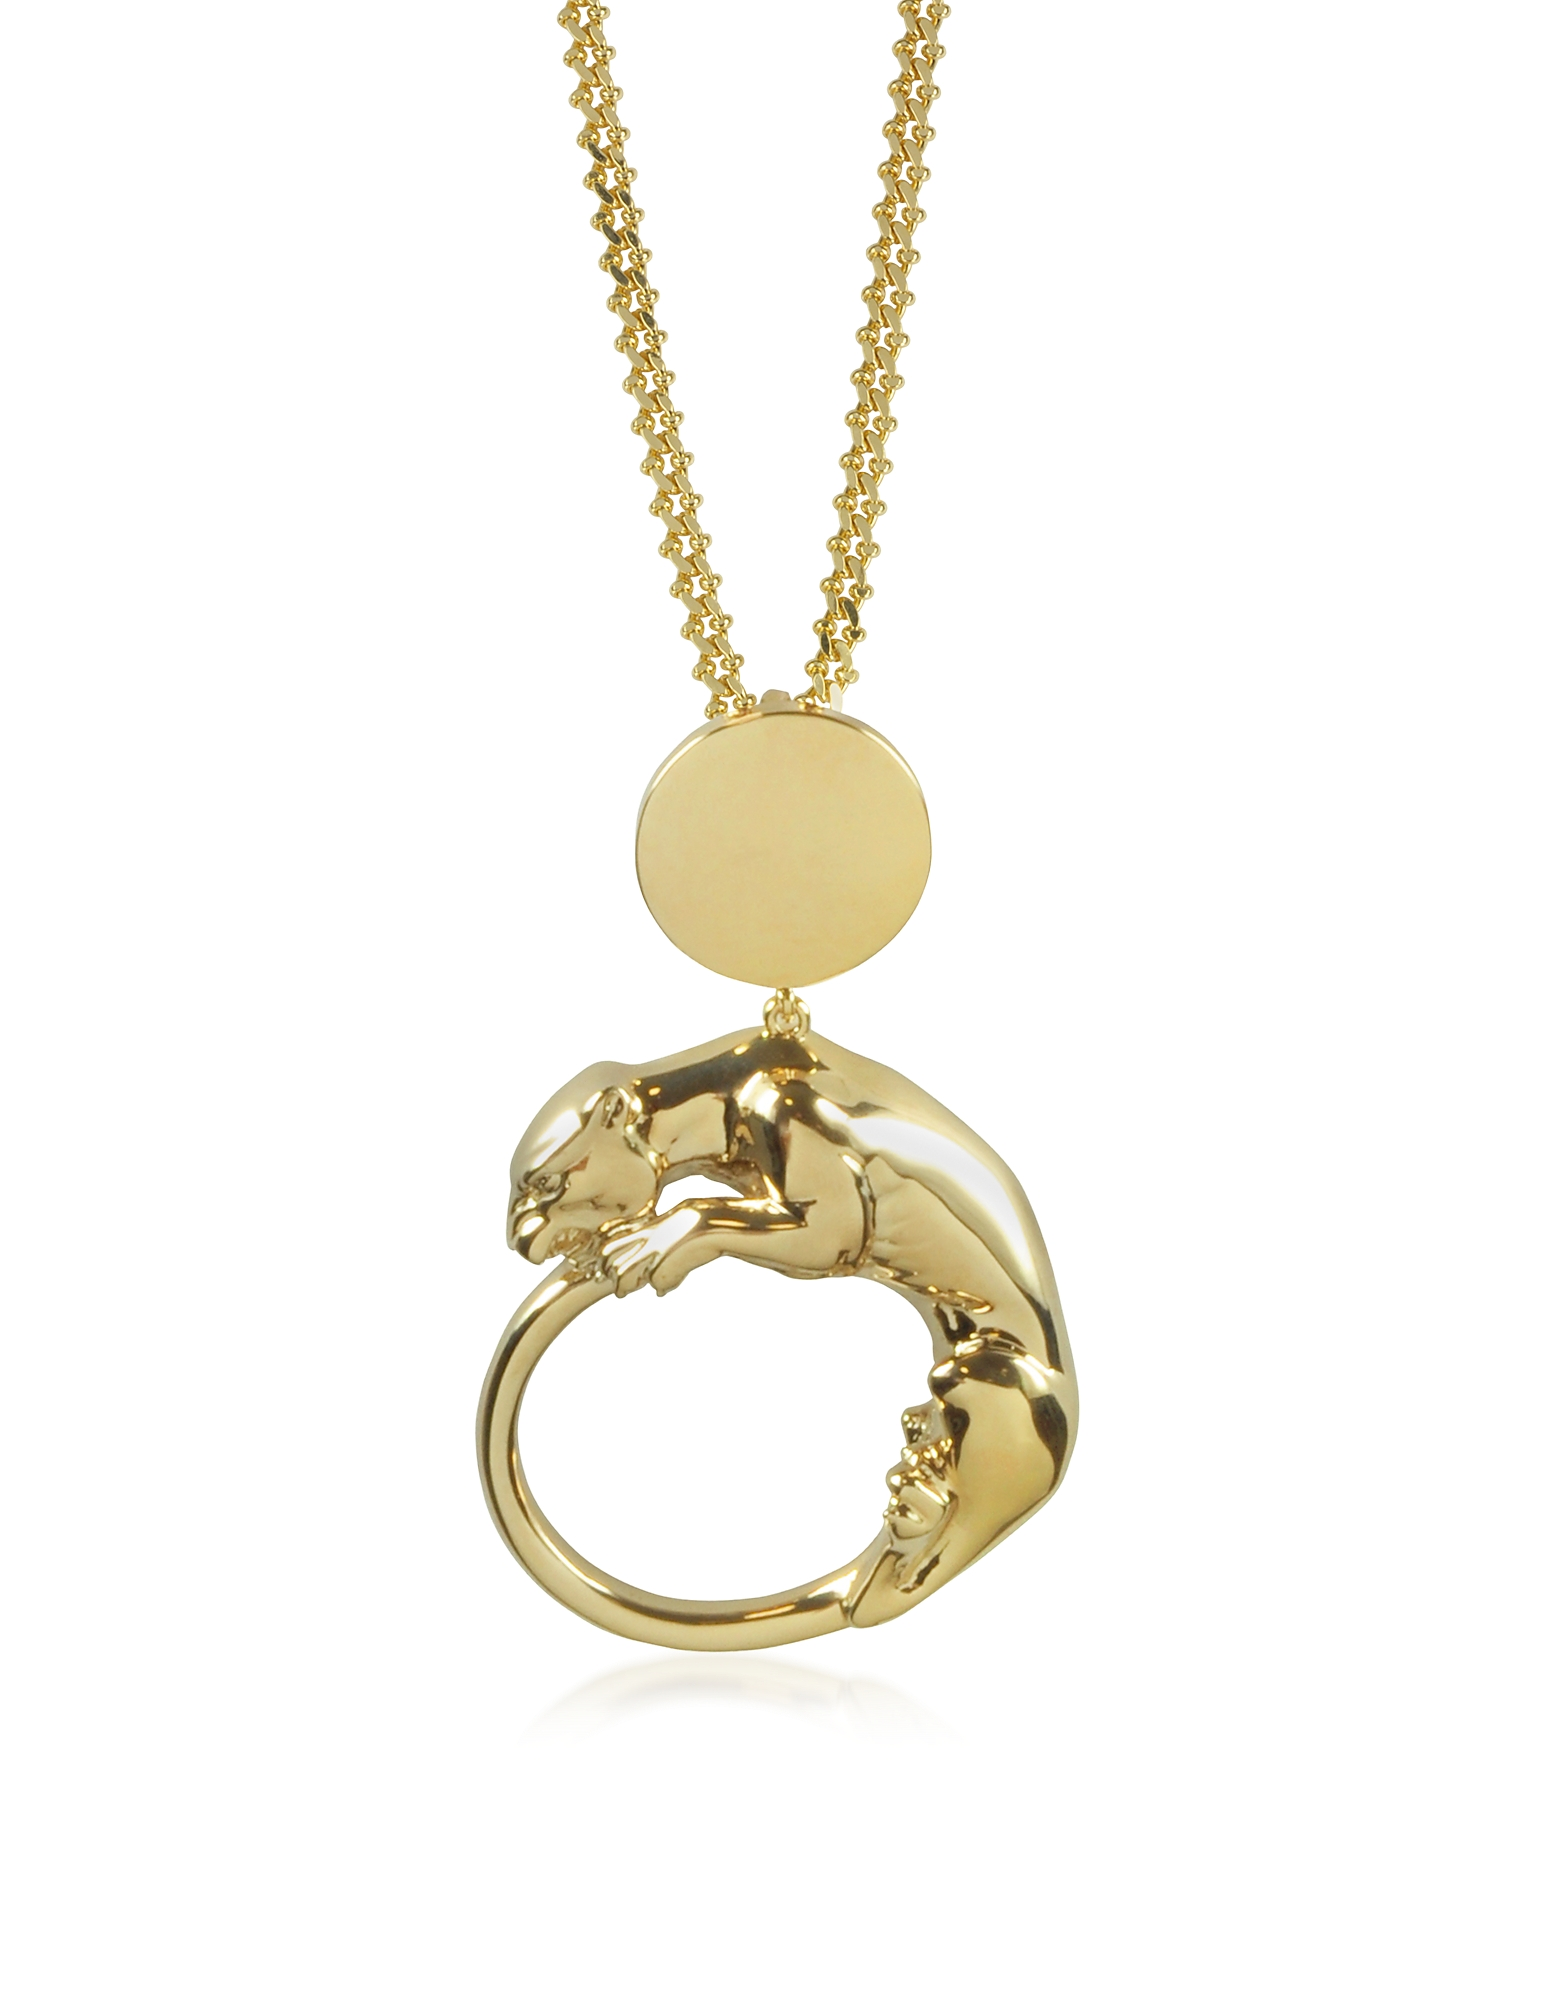 Roberto Cavalli Necklaces, Panther Light Gold Tone Metal Pendant